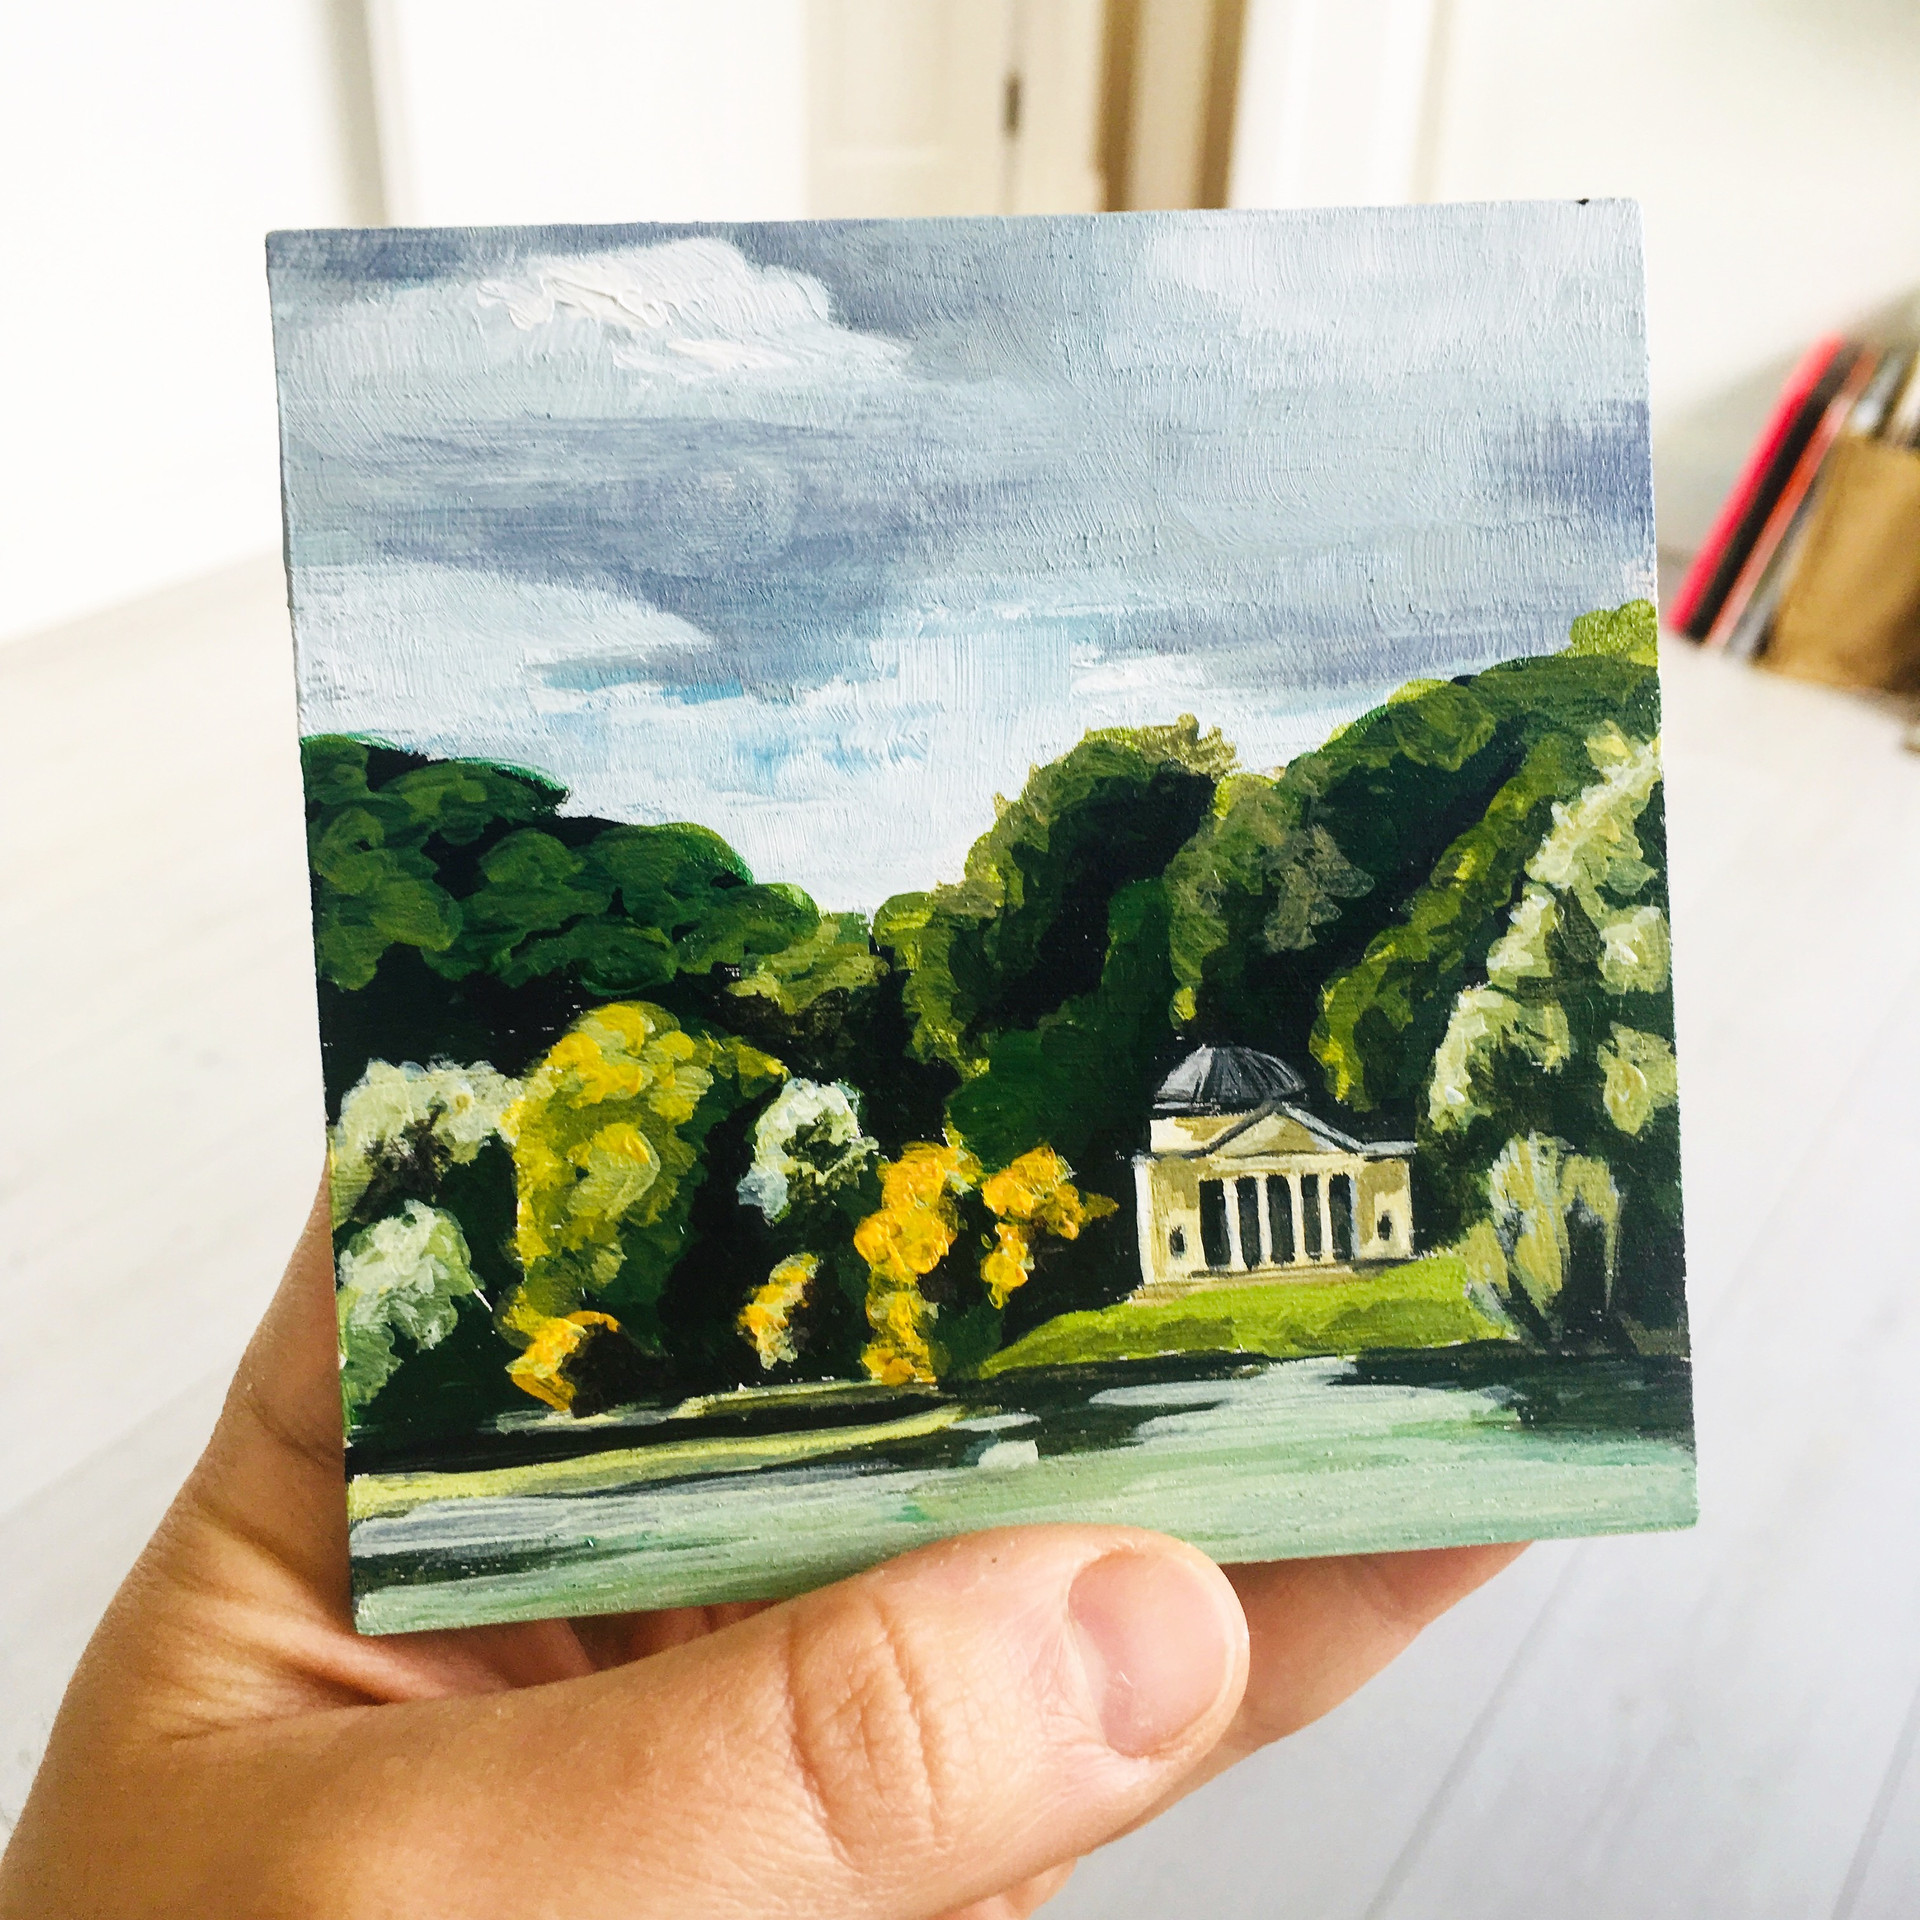 Stourhead in the palm of my hands